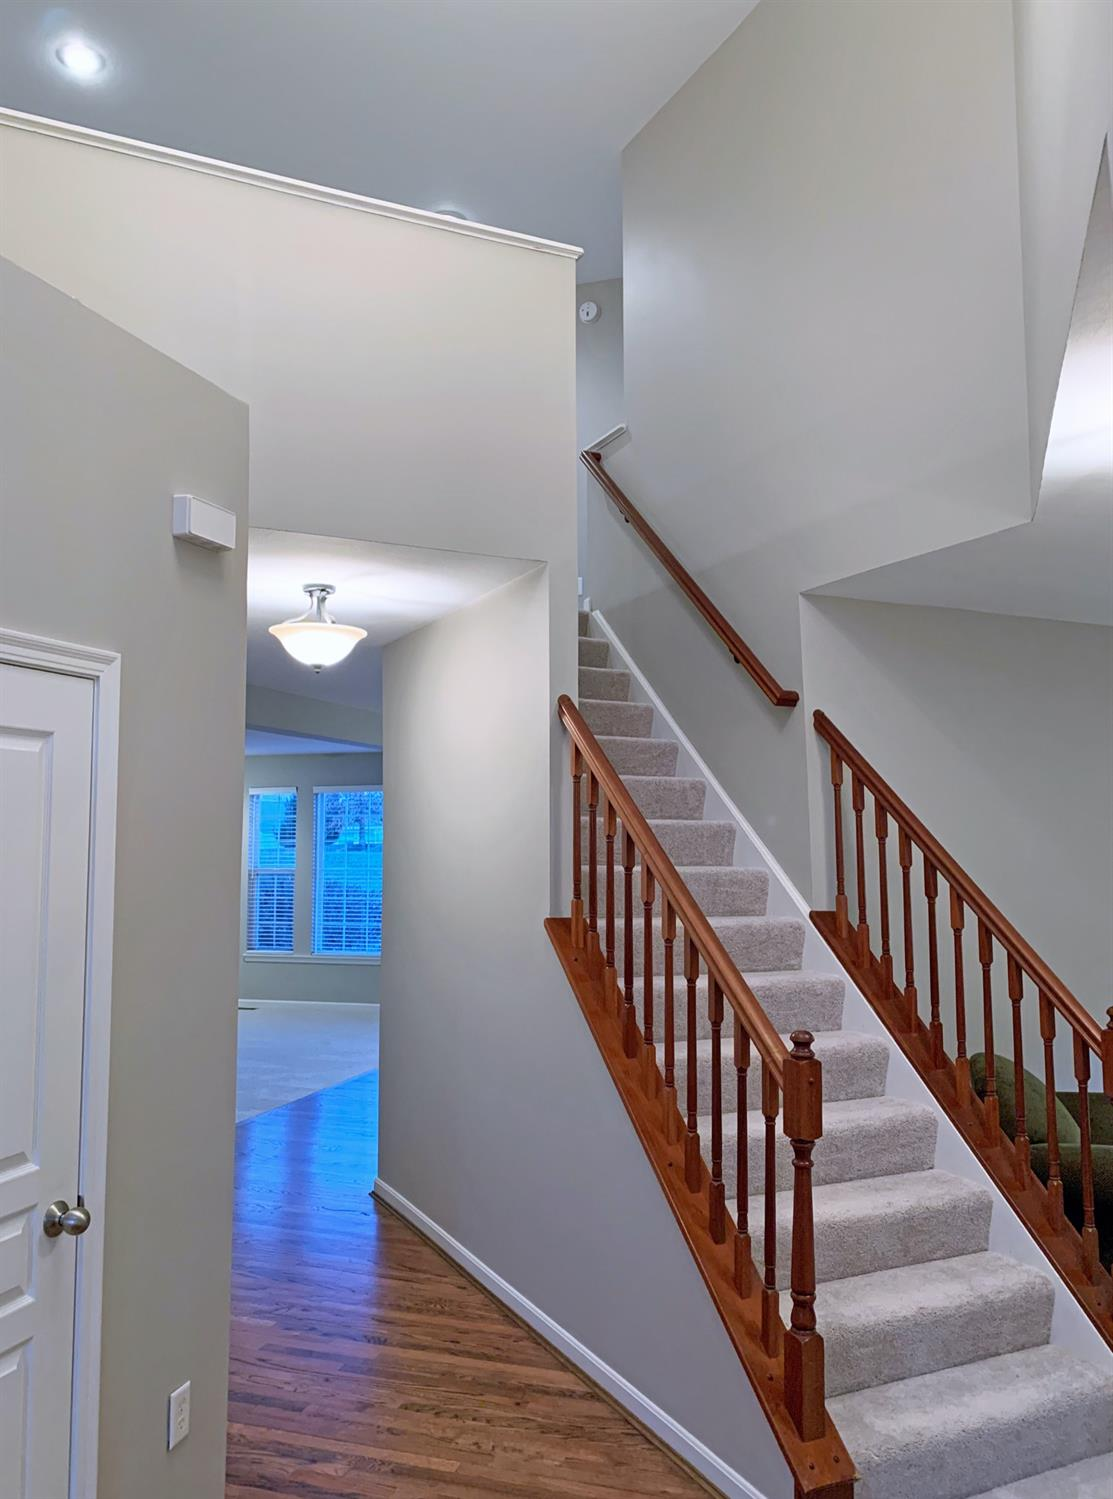 The striking angles of the double-height entry and warm newly refinished hardwood floors welcome you.